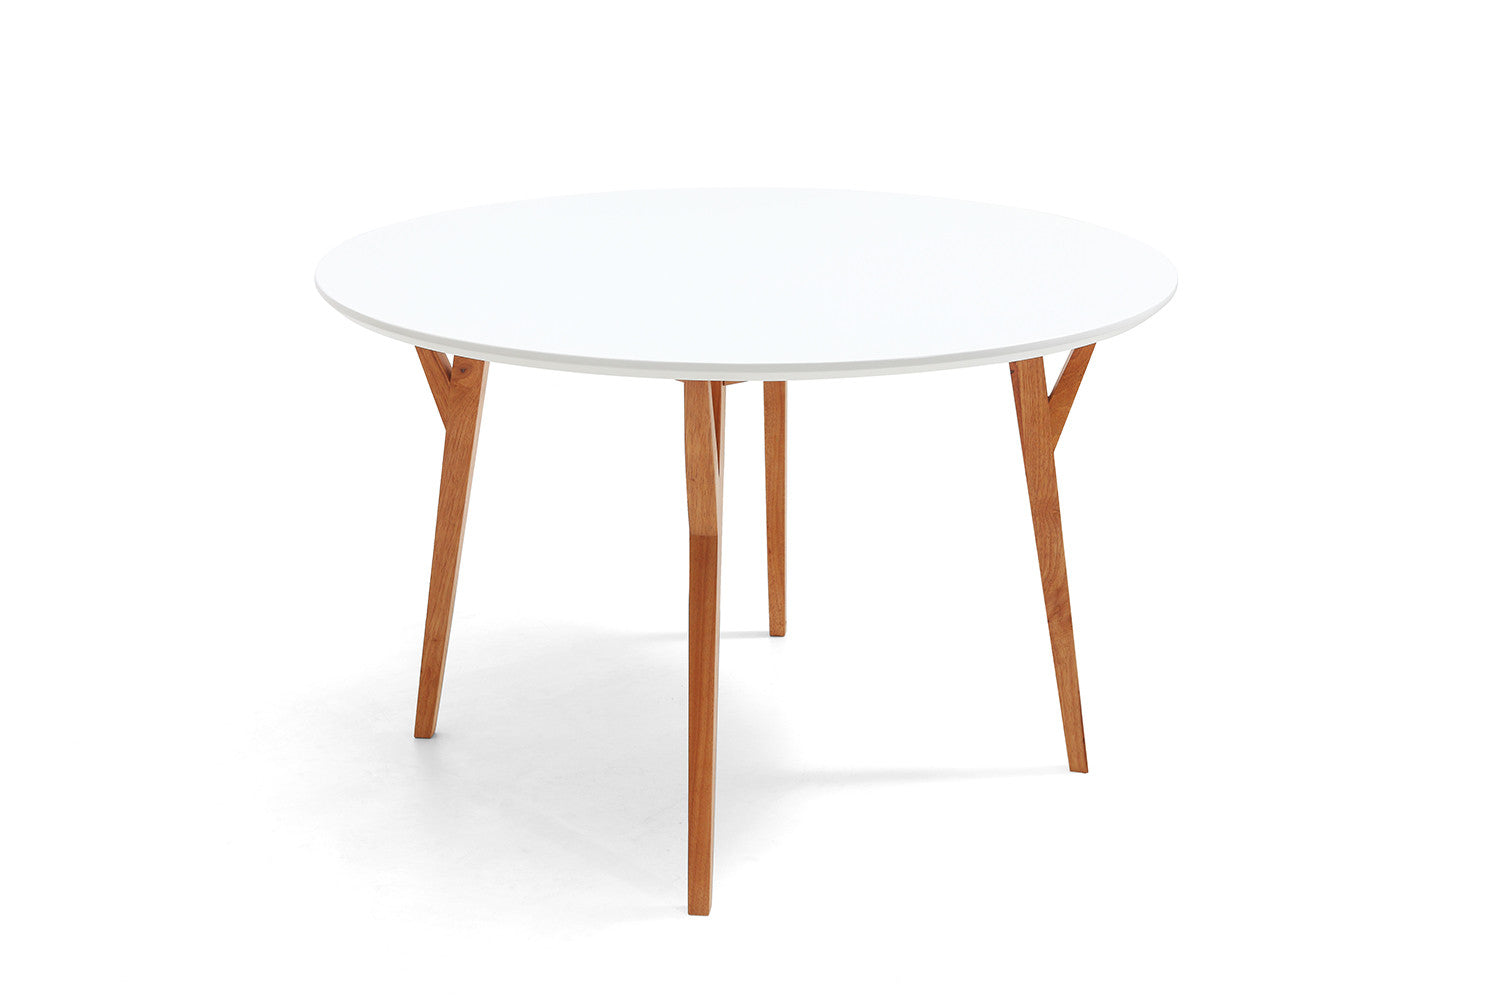 Table de salle manger ronde design scandinave moesa for Table en bois de salle a manger